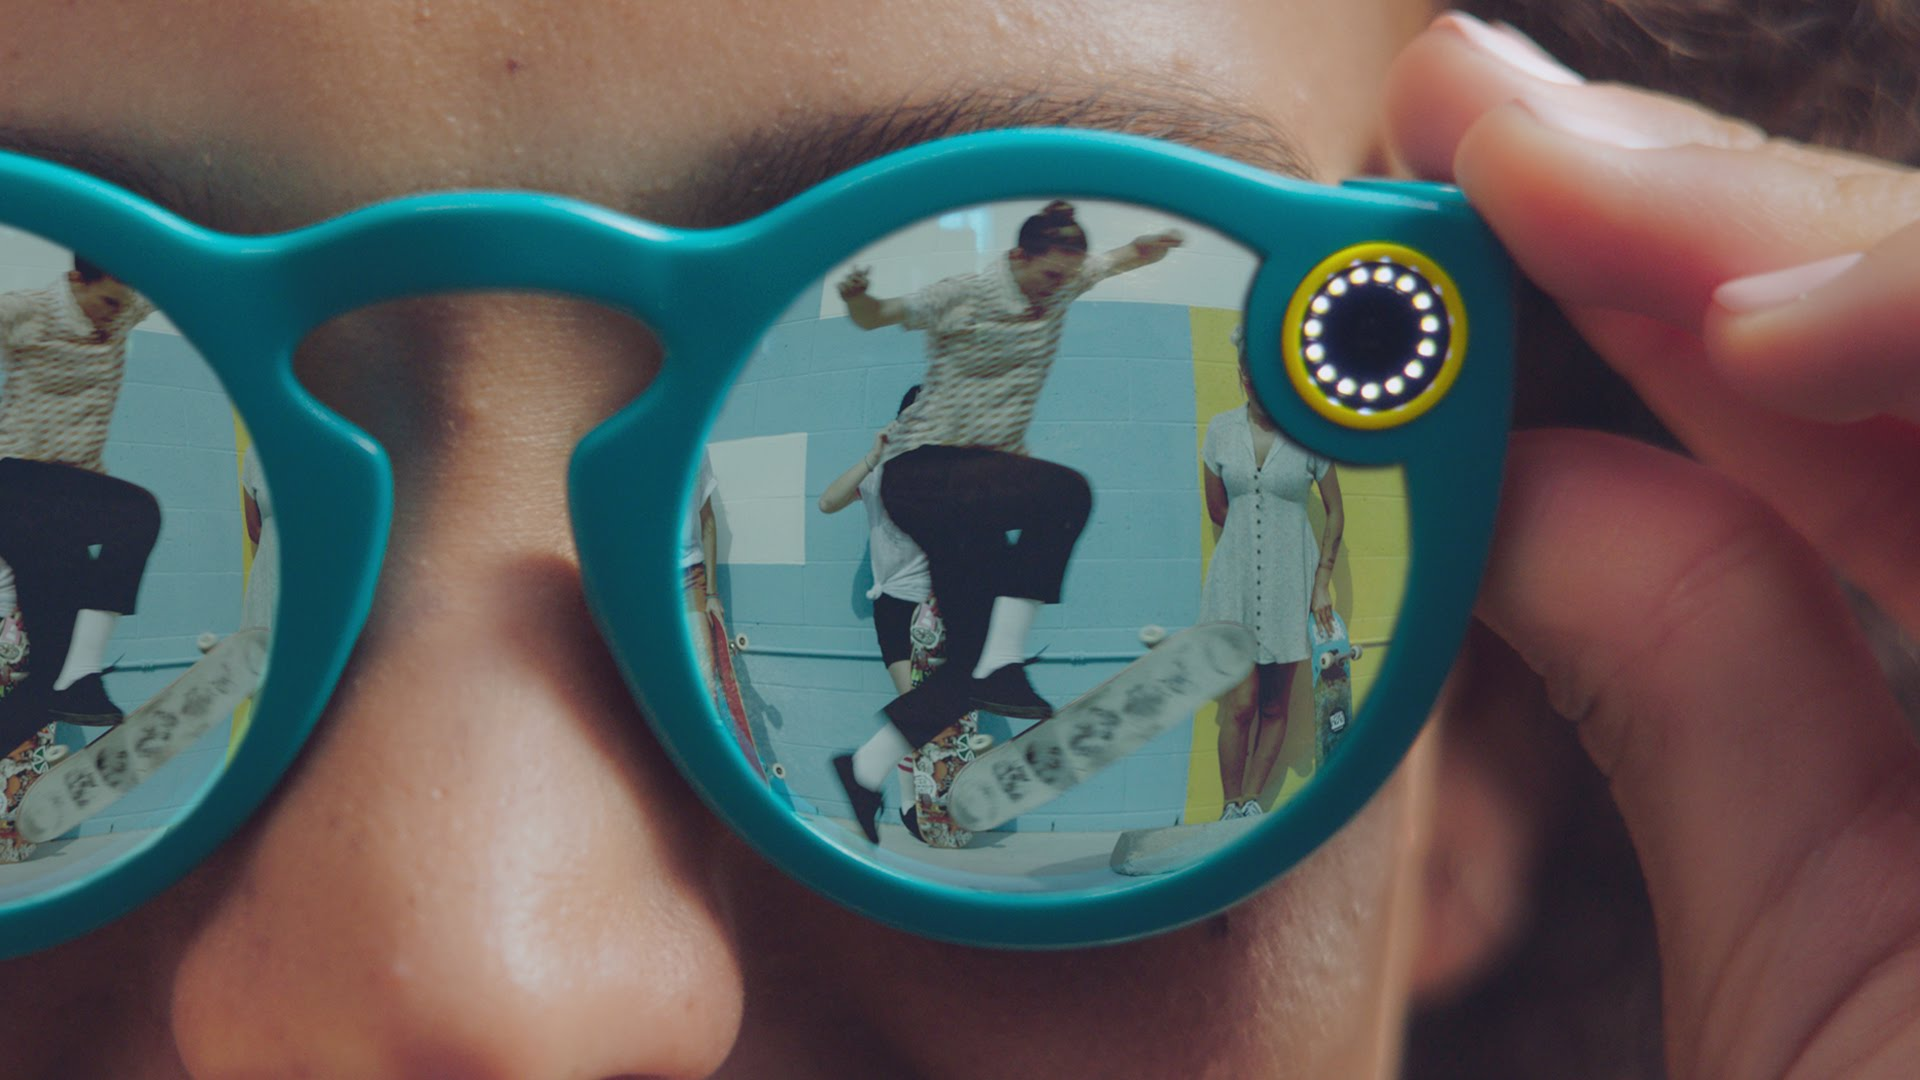 Spectacles, New Sunglasses With an Integrated Camera That Wirelessly Upload Videos to Snapchat